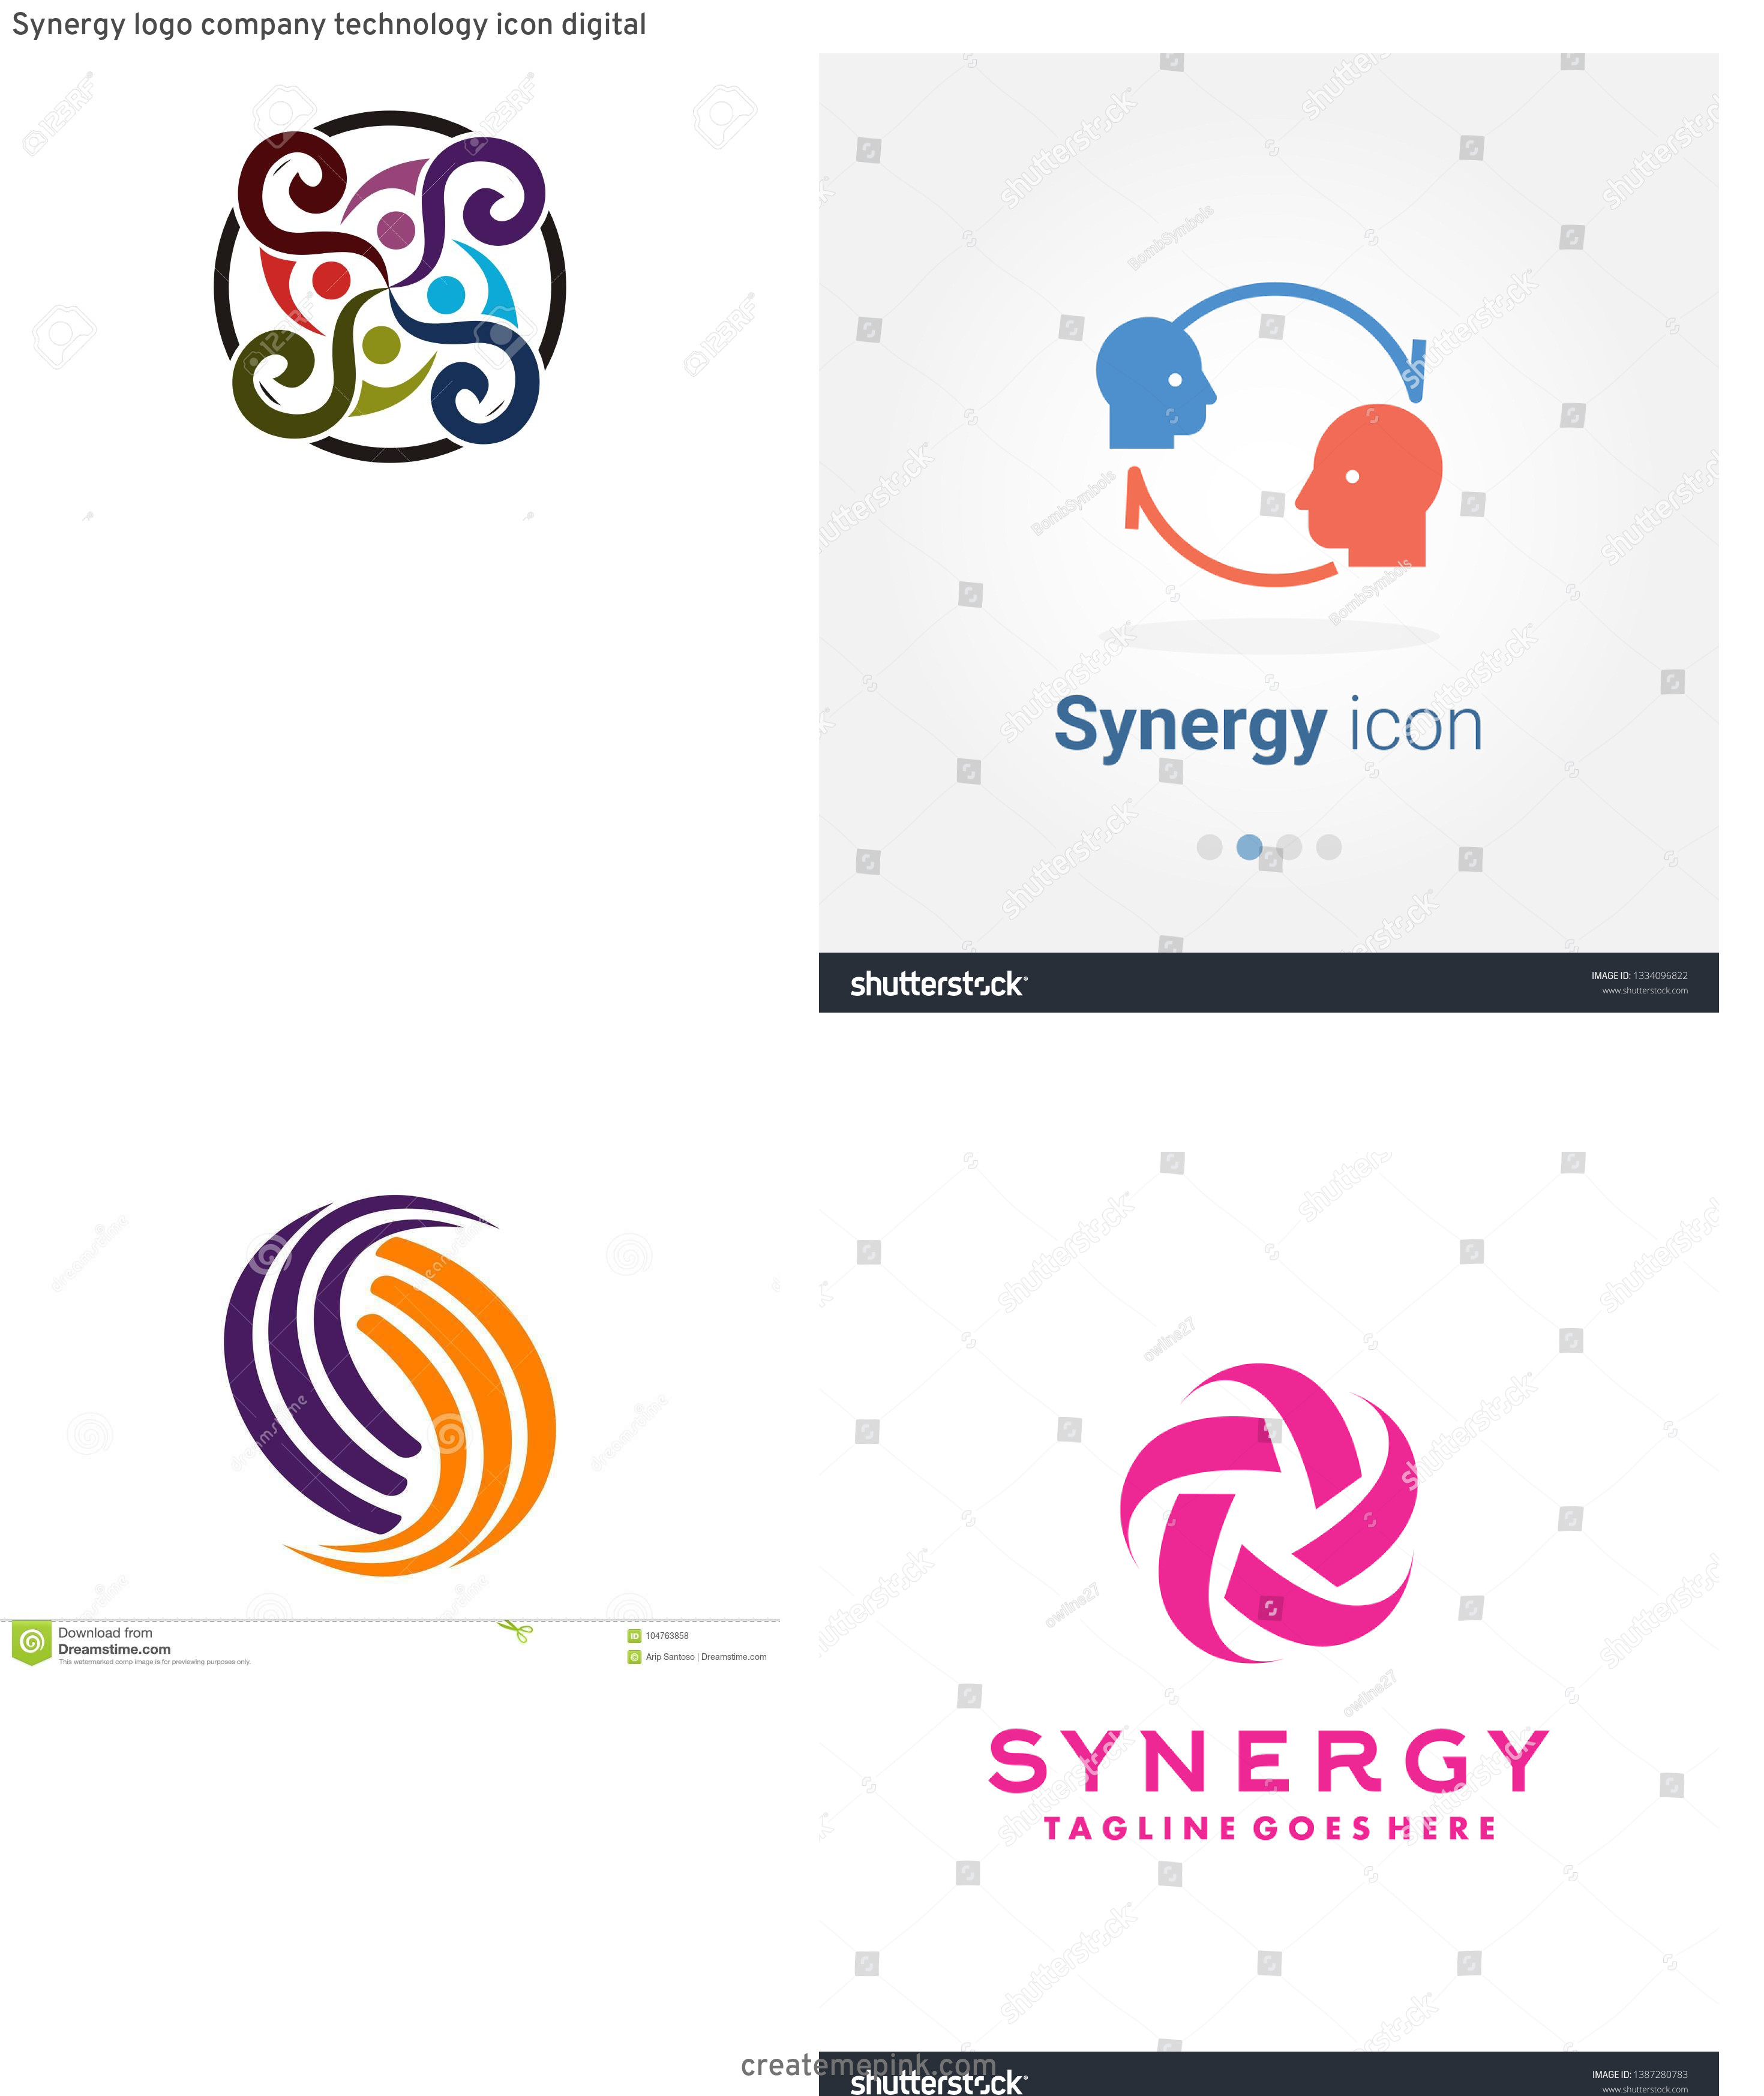 Vector Synergy: Synergy Logo Company Technology Icon Digital